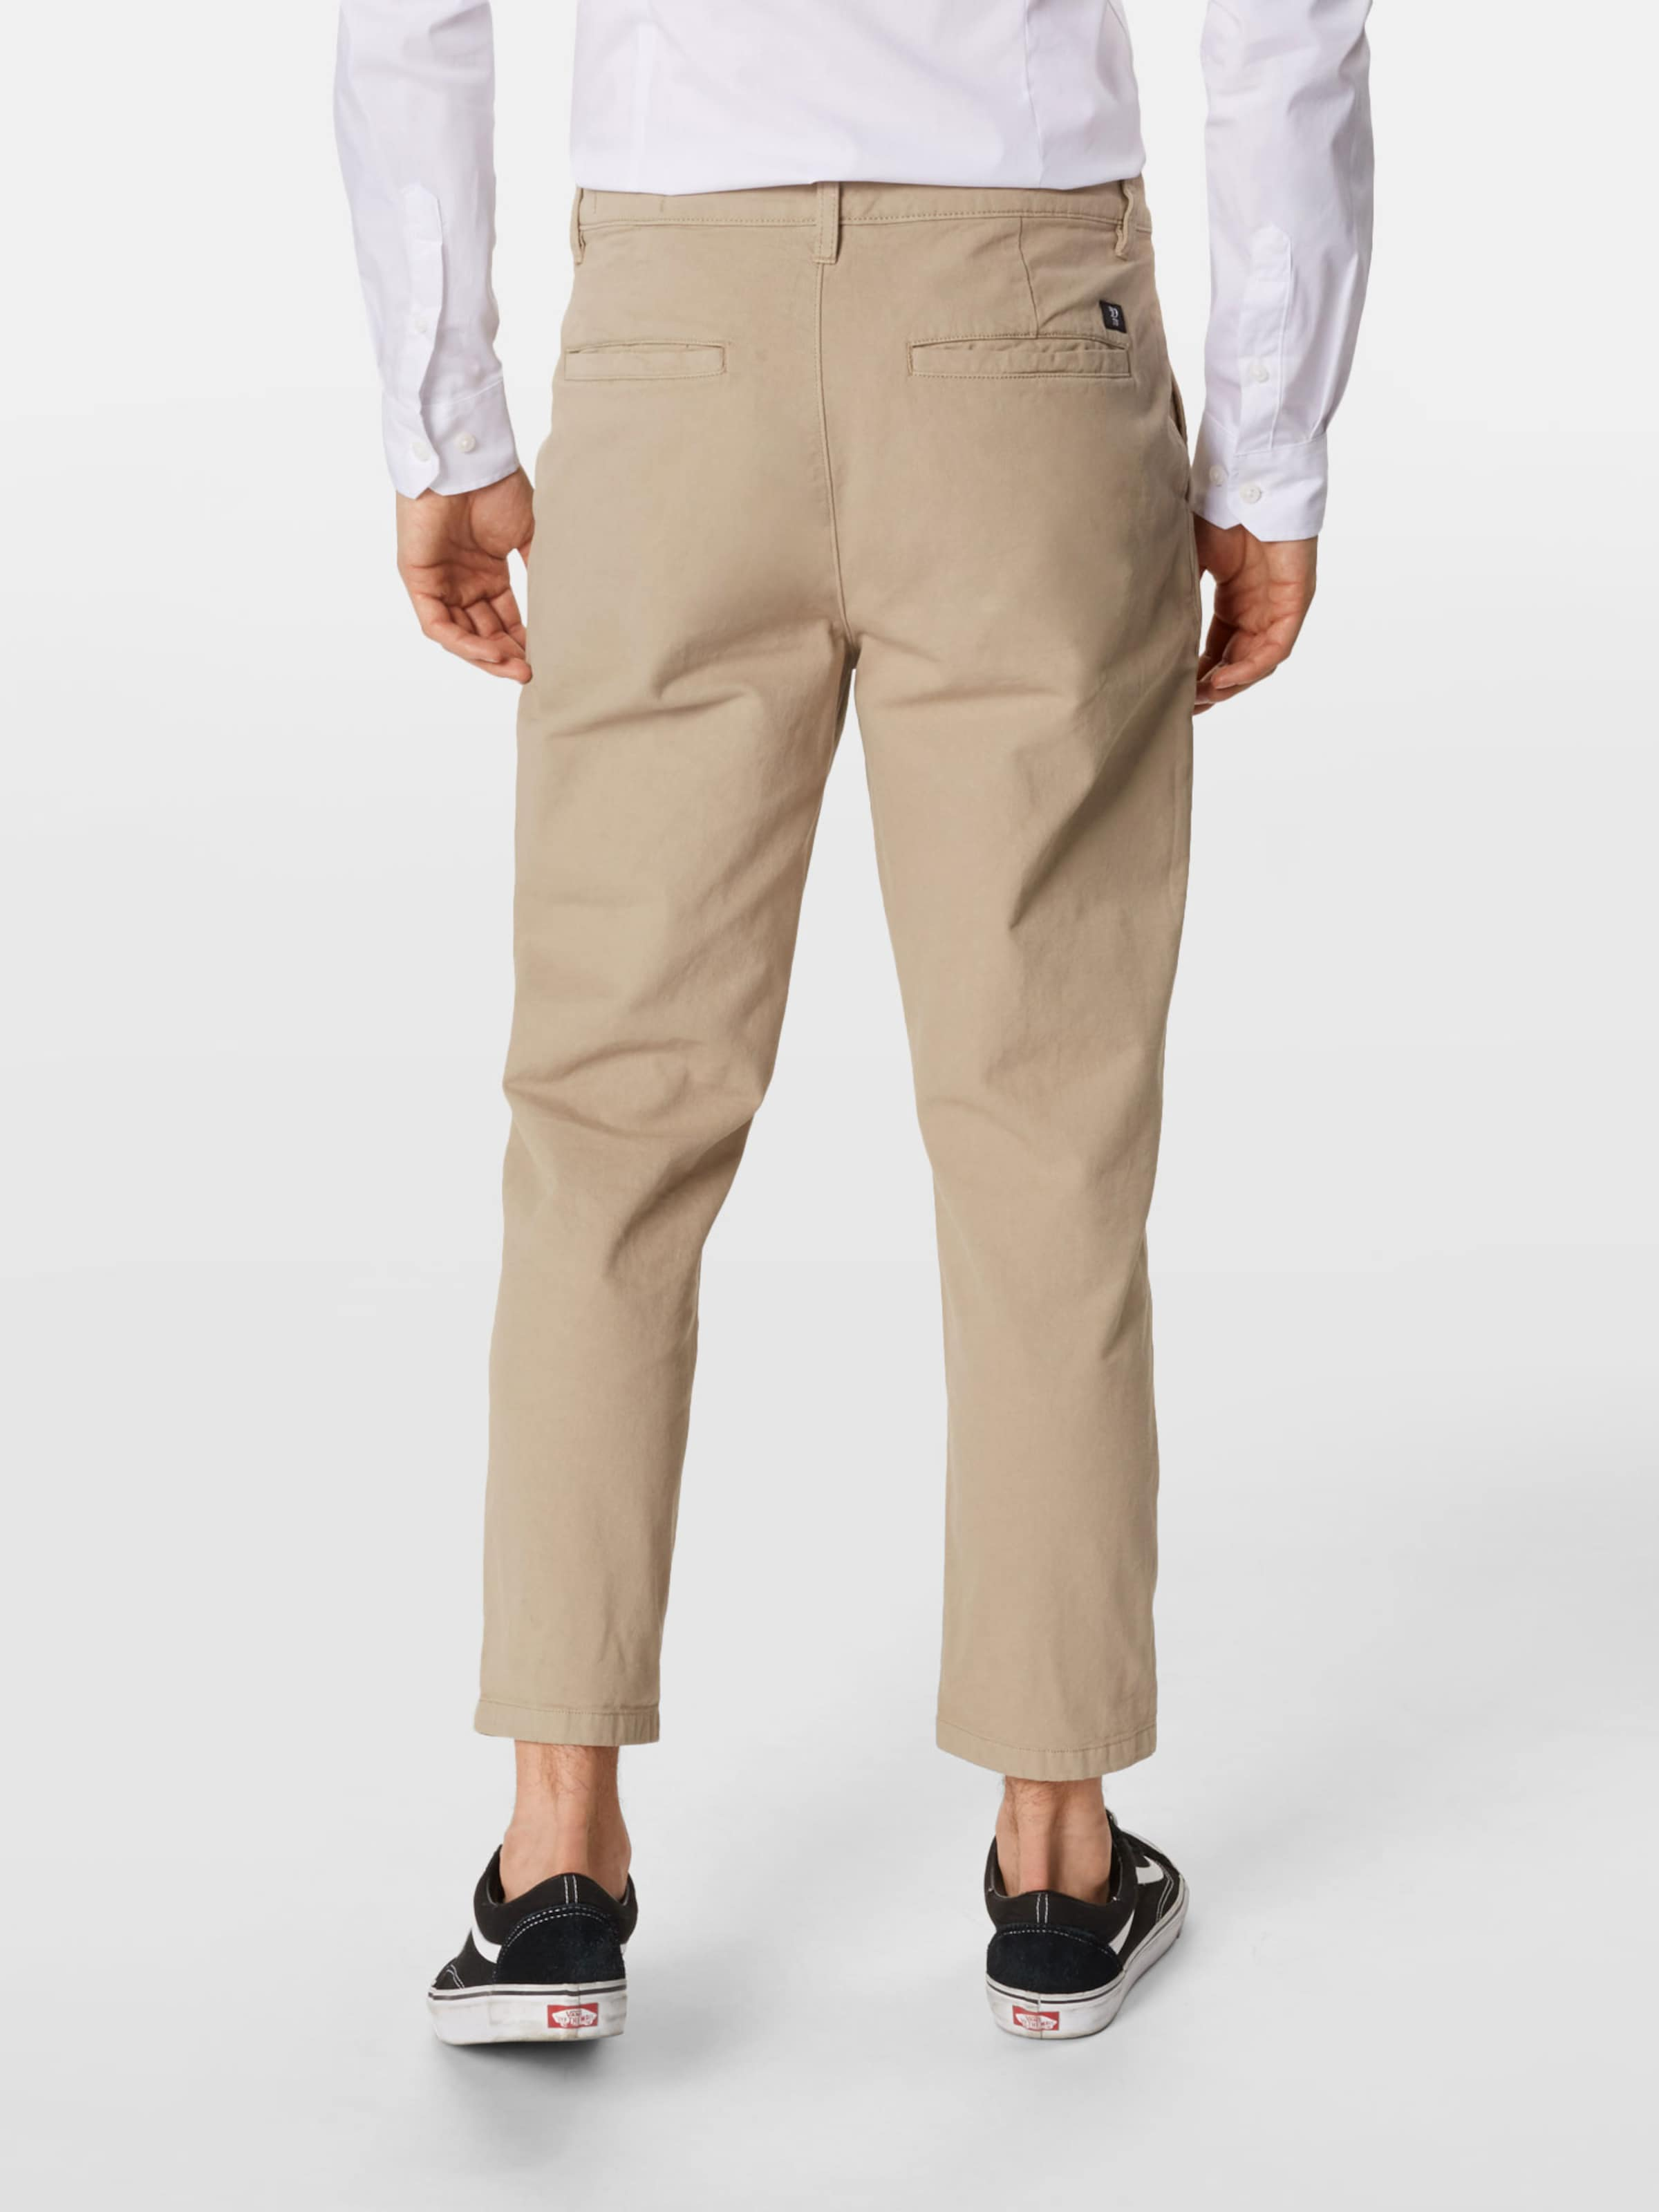 En Denim Beige Chino Tom Tailor Pantalon Yygf7b6